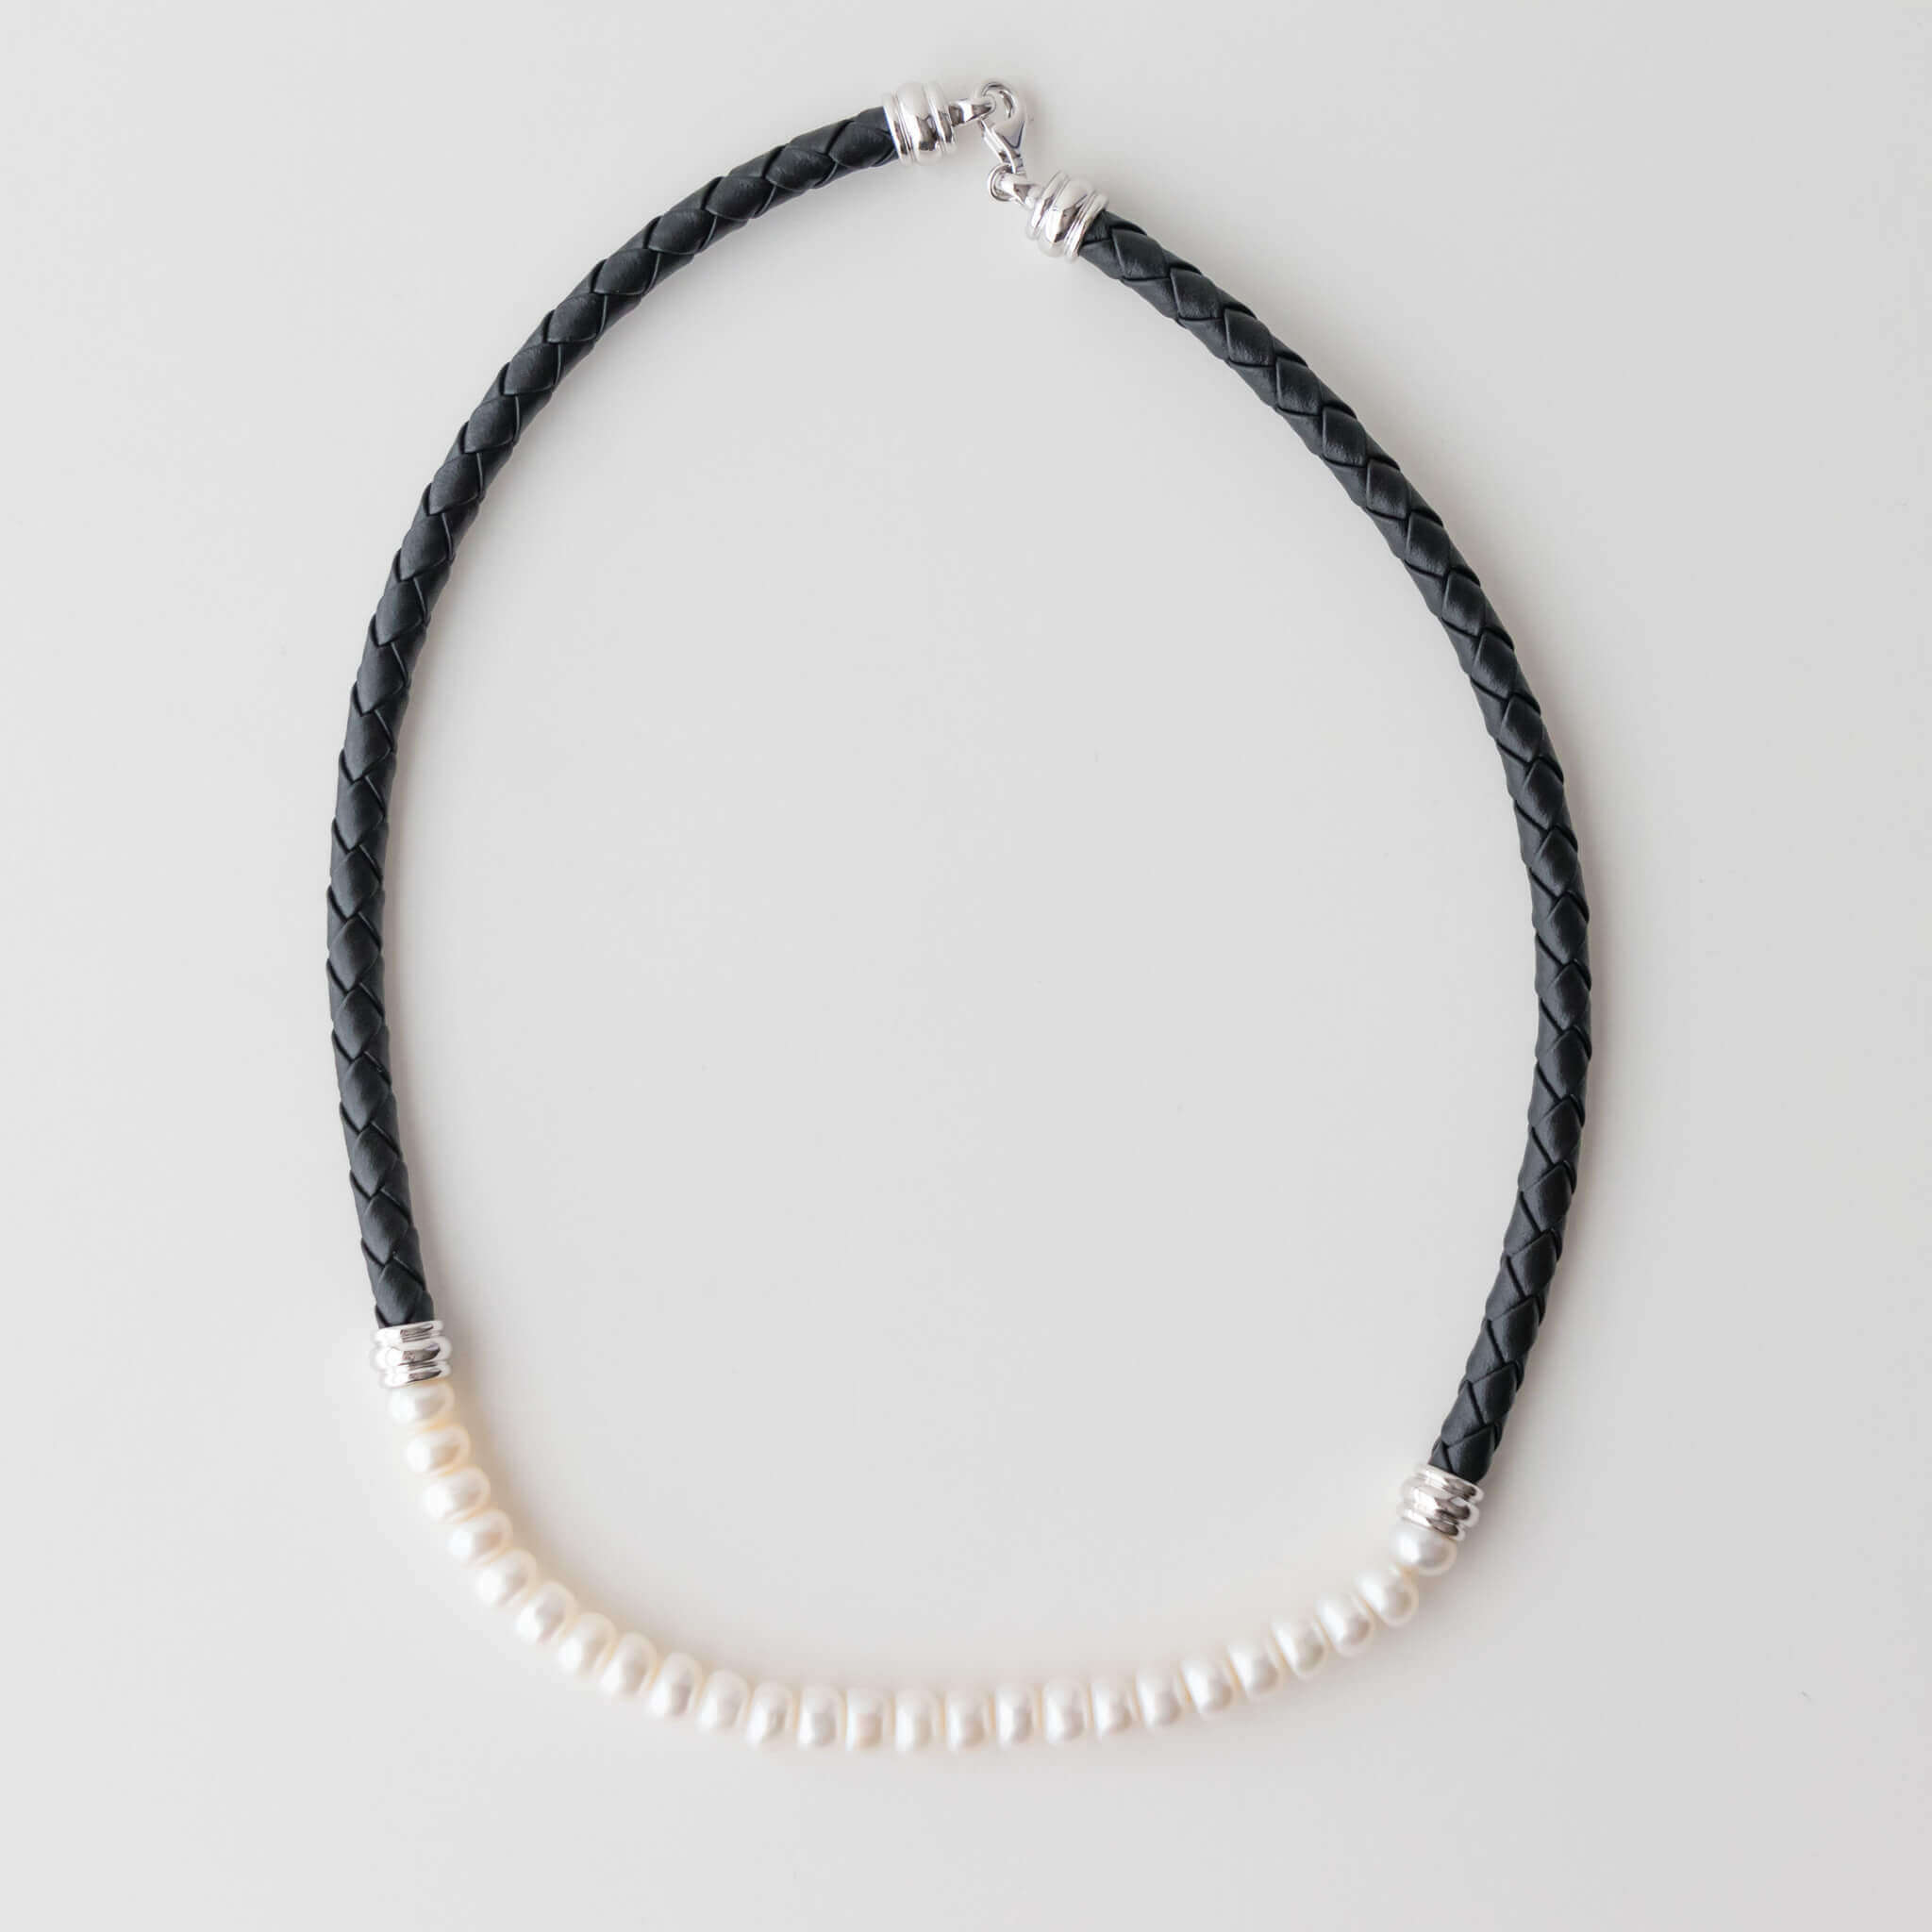 Sterling Silver and Italian Leather Necklace with 7-8 mm Freshwater Pearls